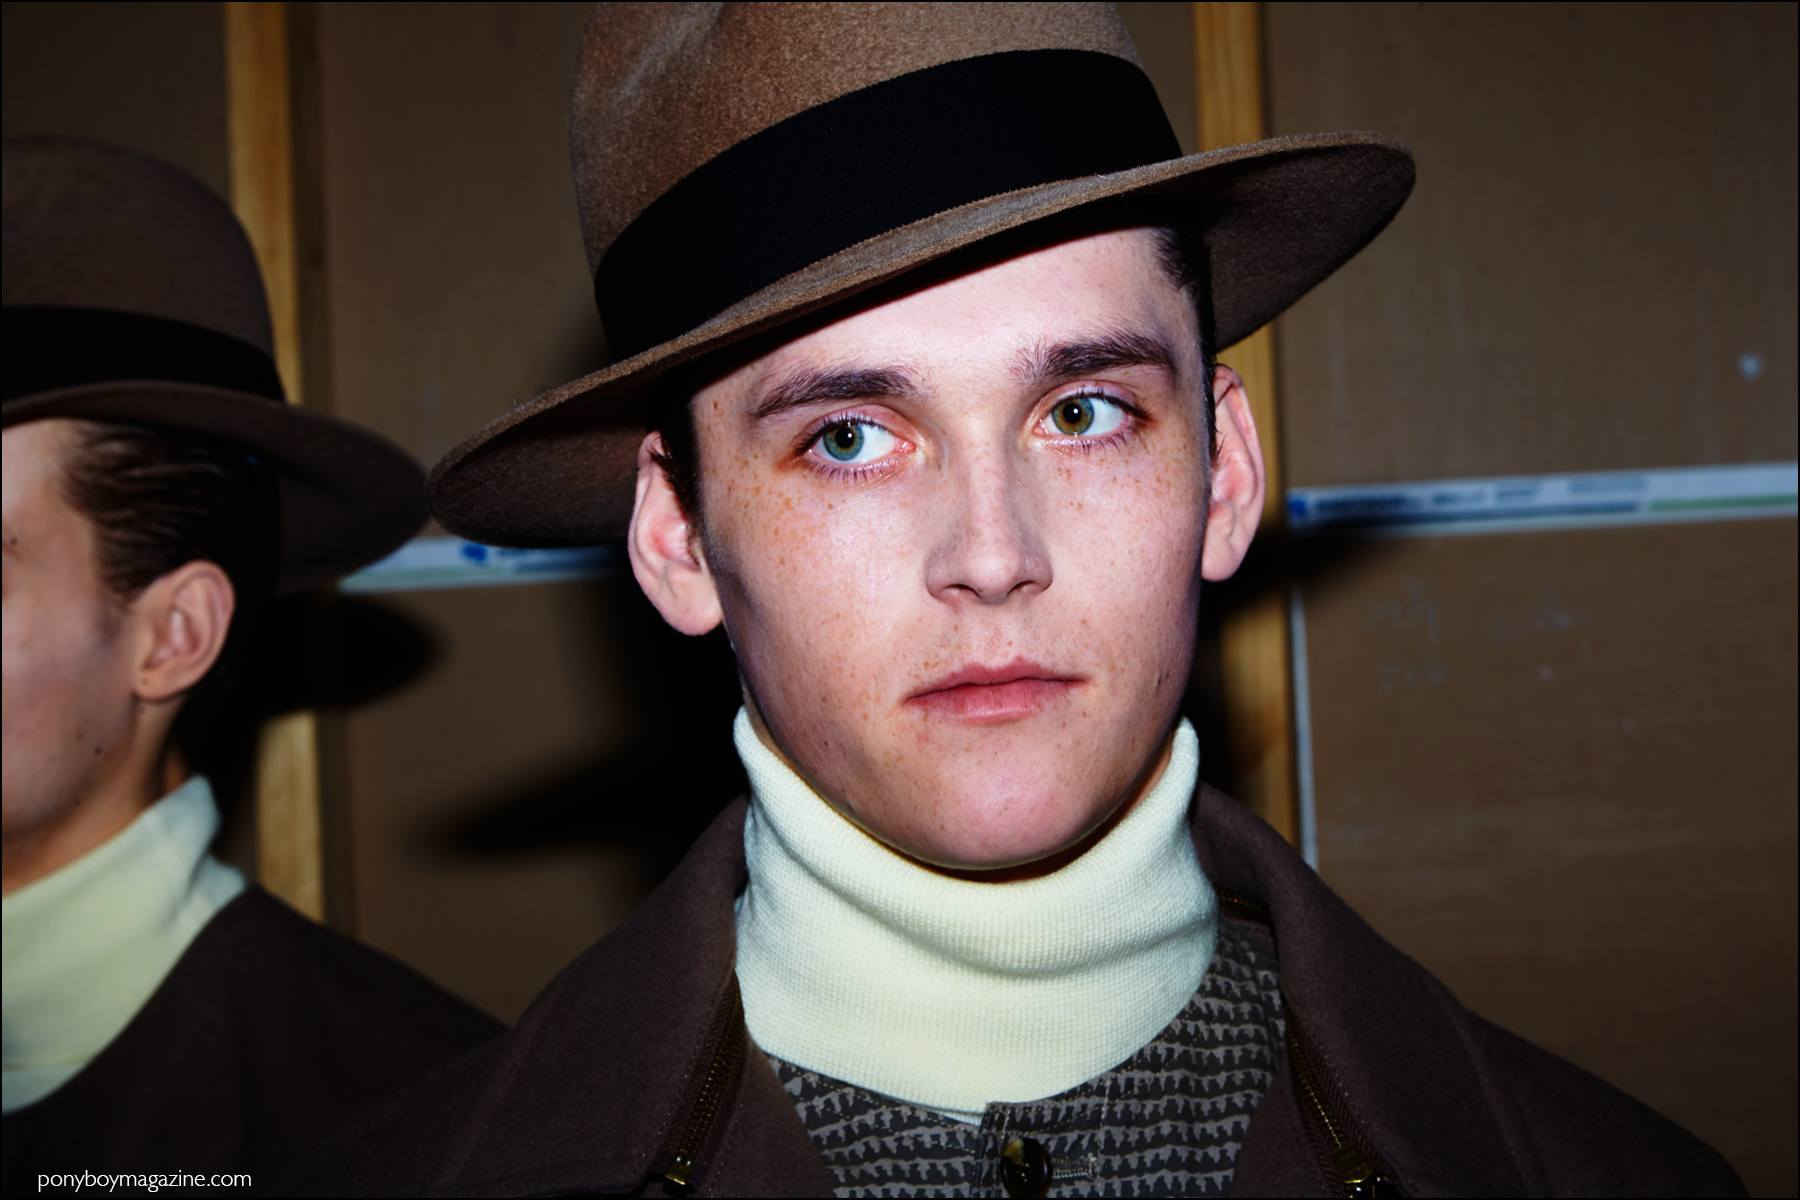 Model Anders Hayward wears a fedora, backstage at Robert Geller F/W16 menswear show. Photography by Alexander Thompson for Ponyboy magazine NY.